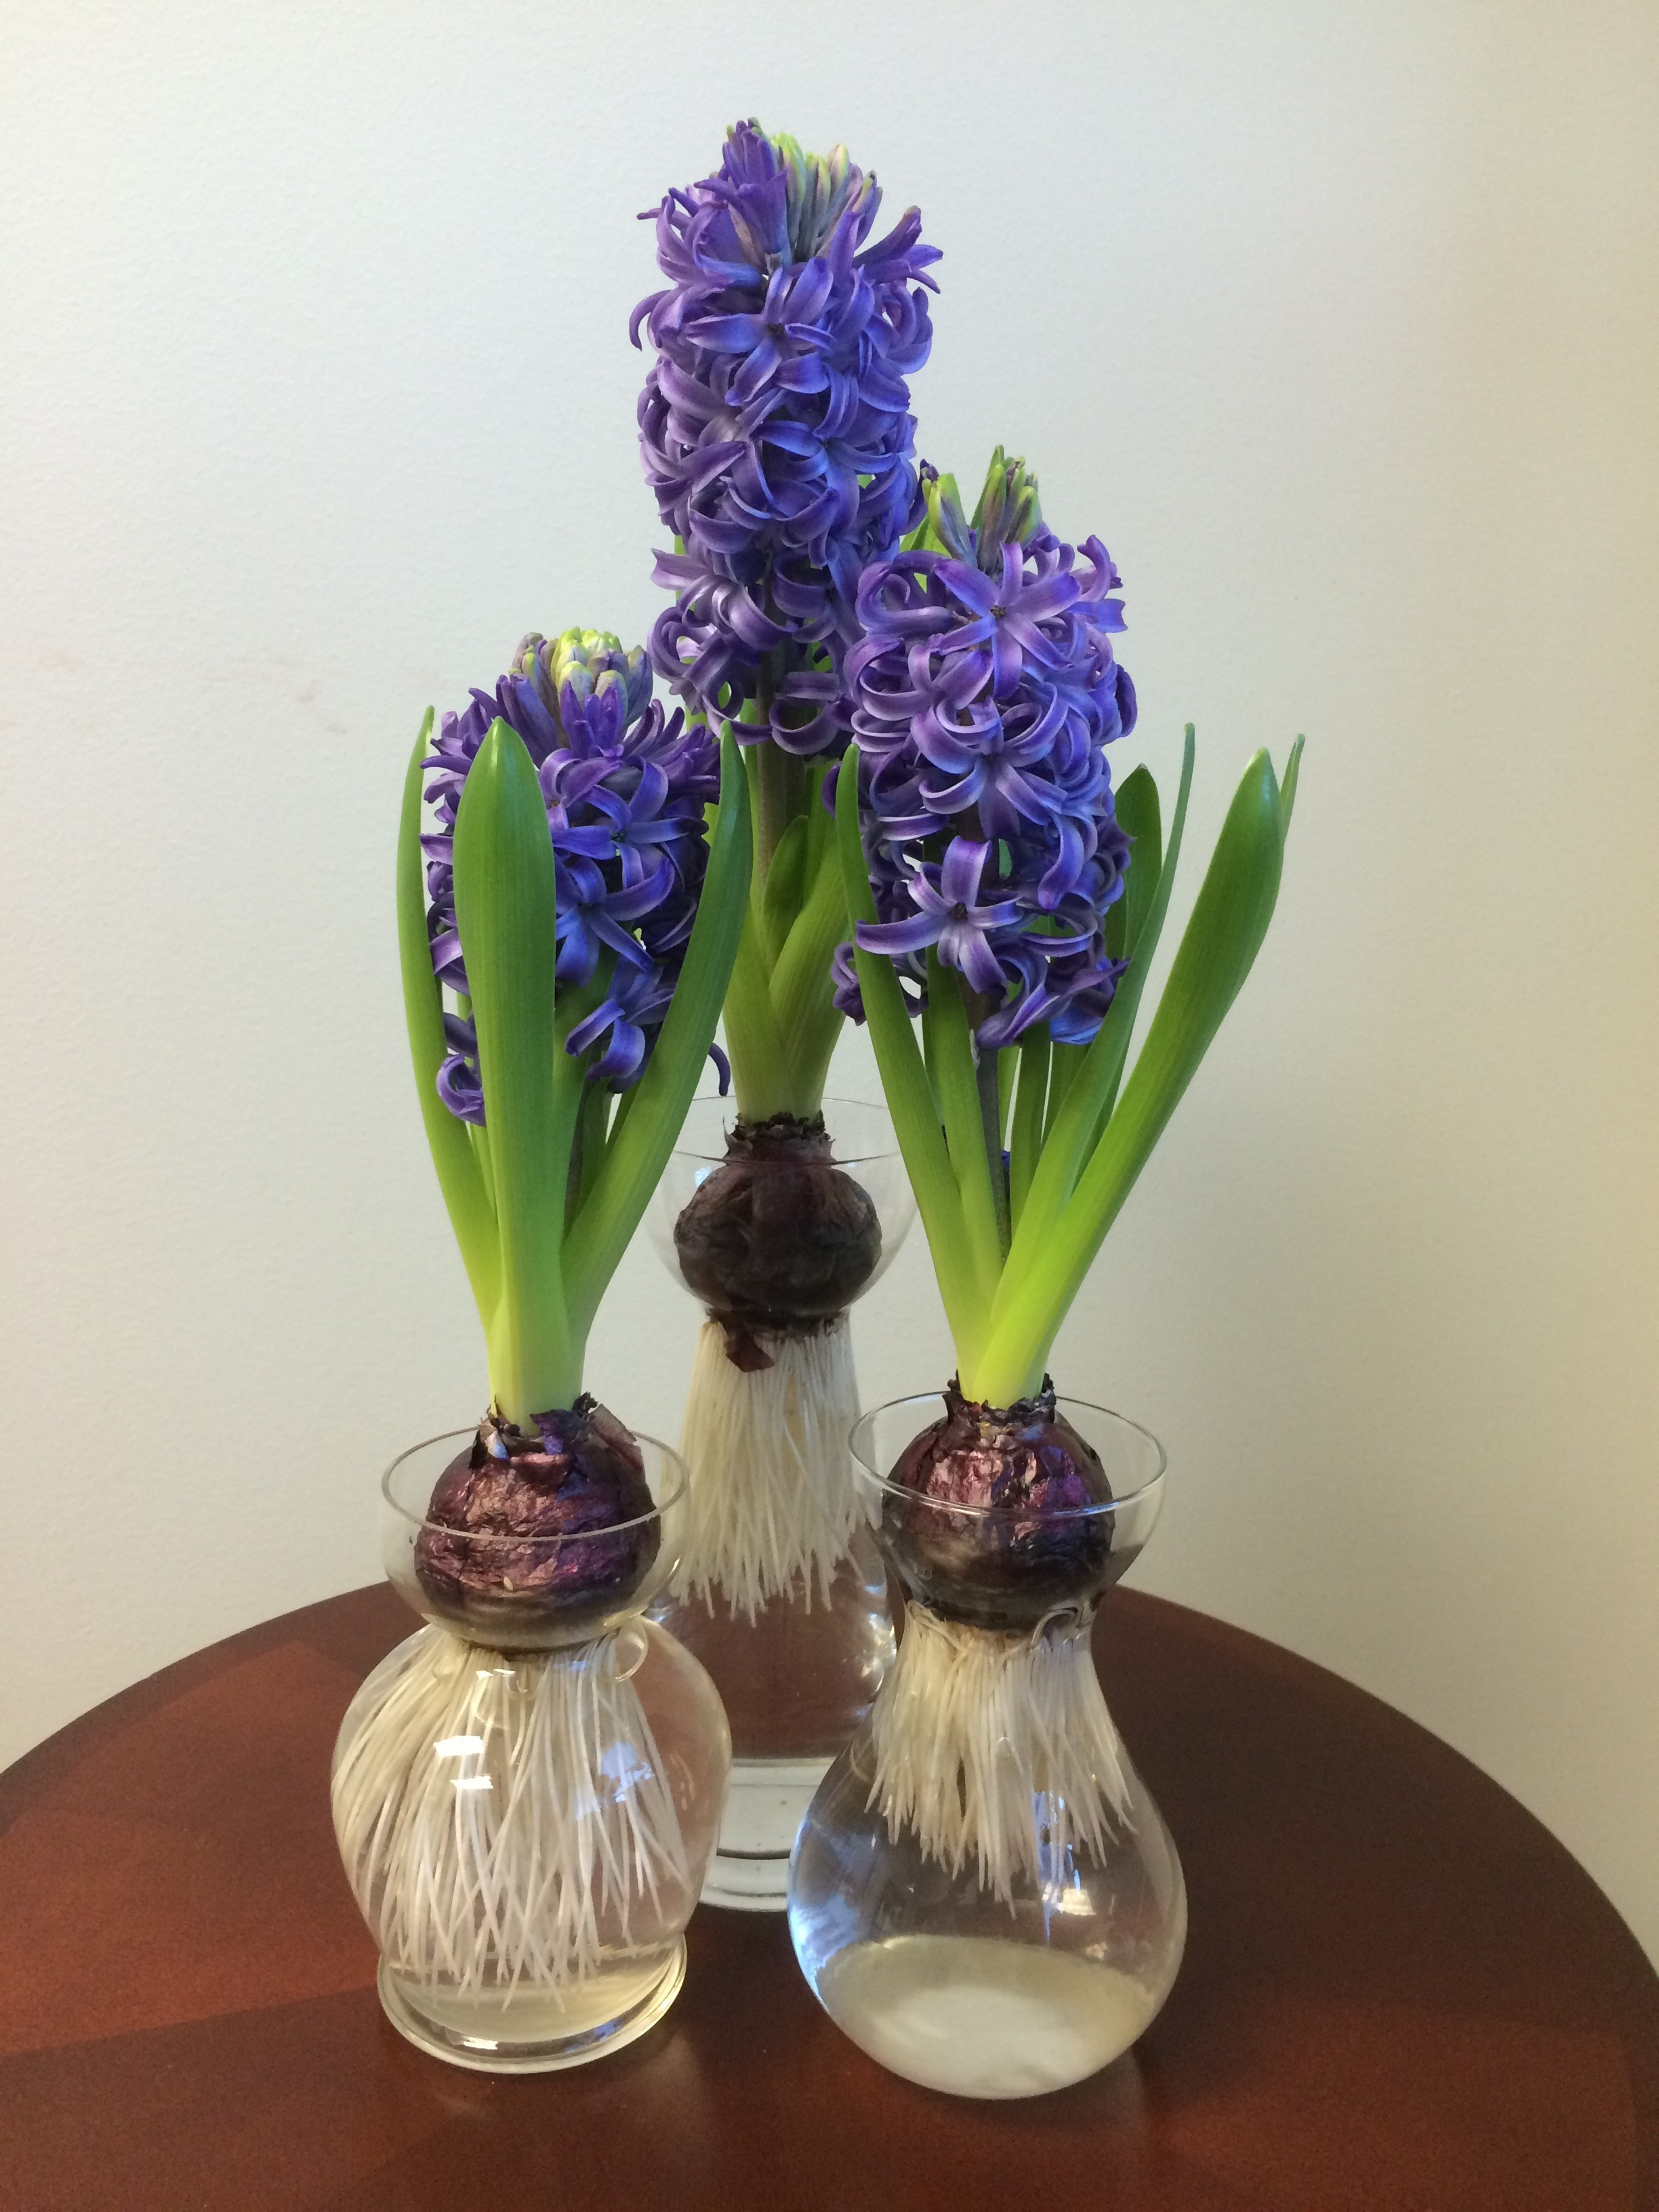 15 Amazing Hyacinth forcing Vase